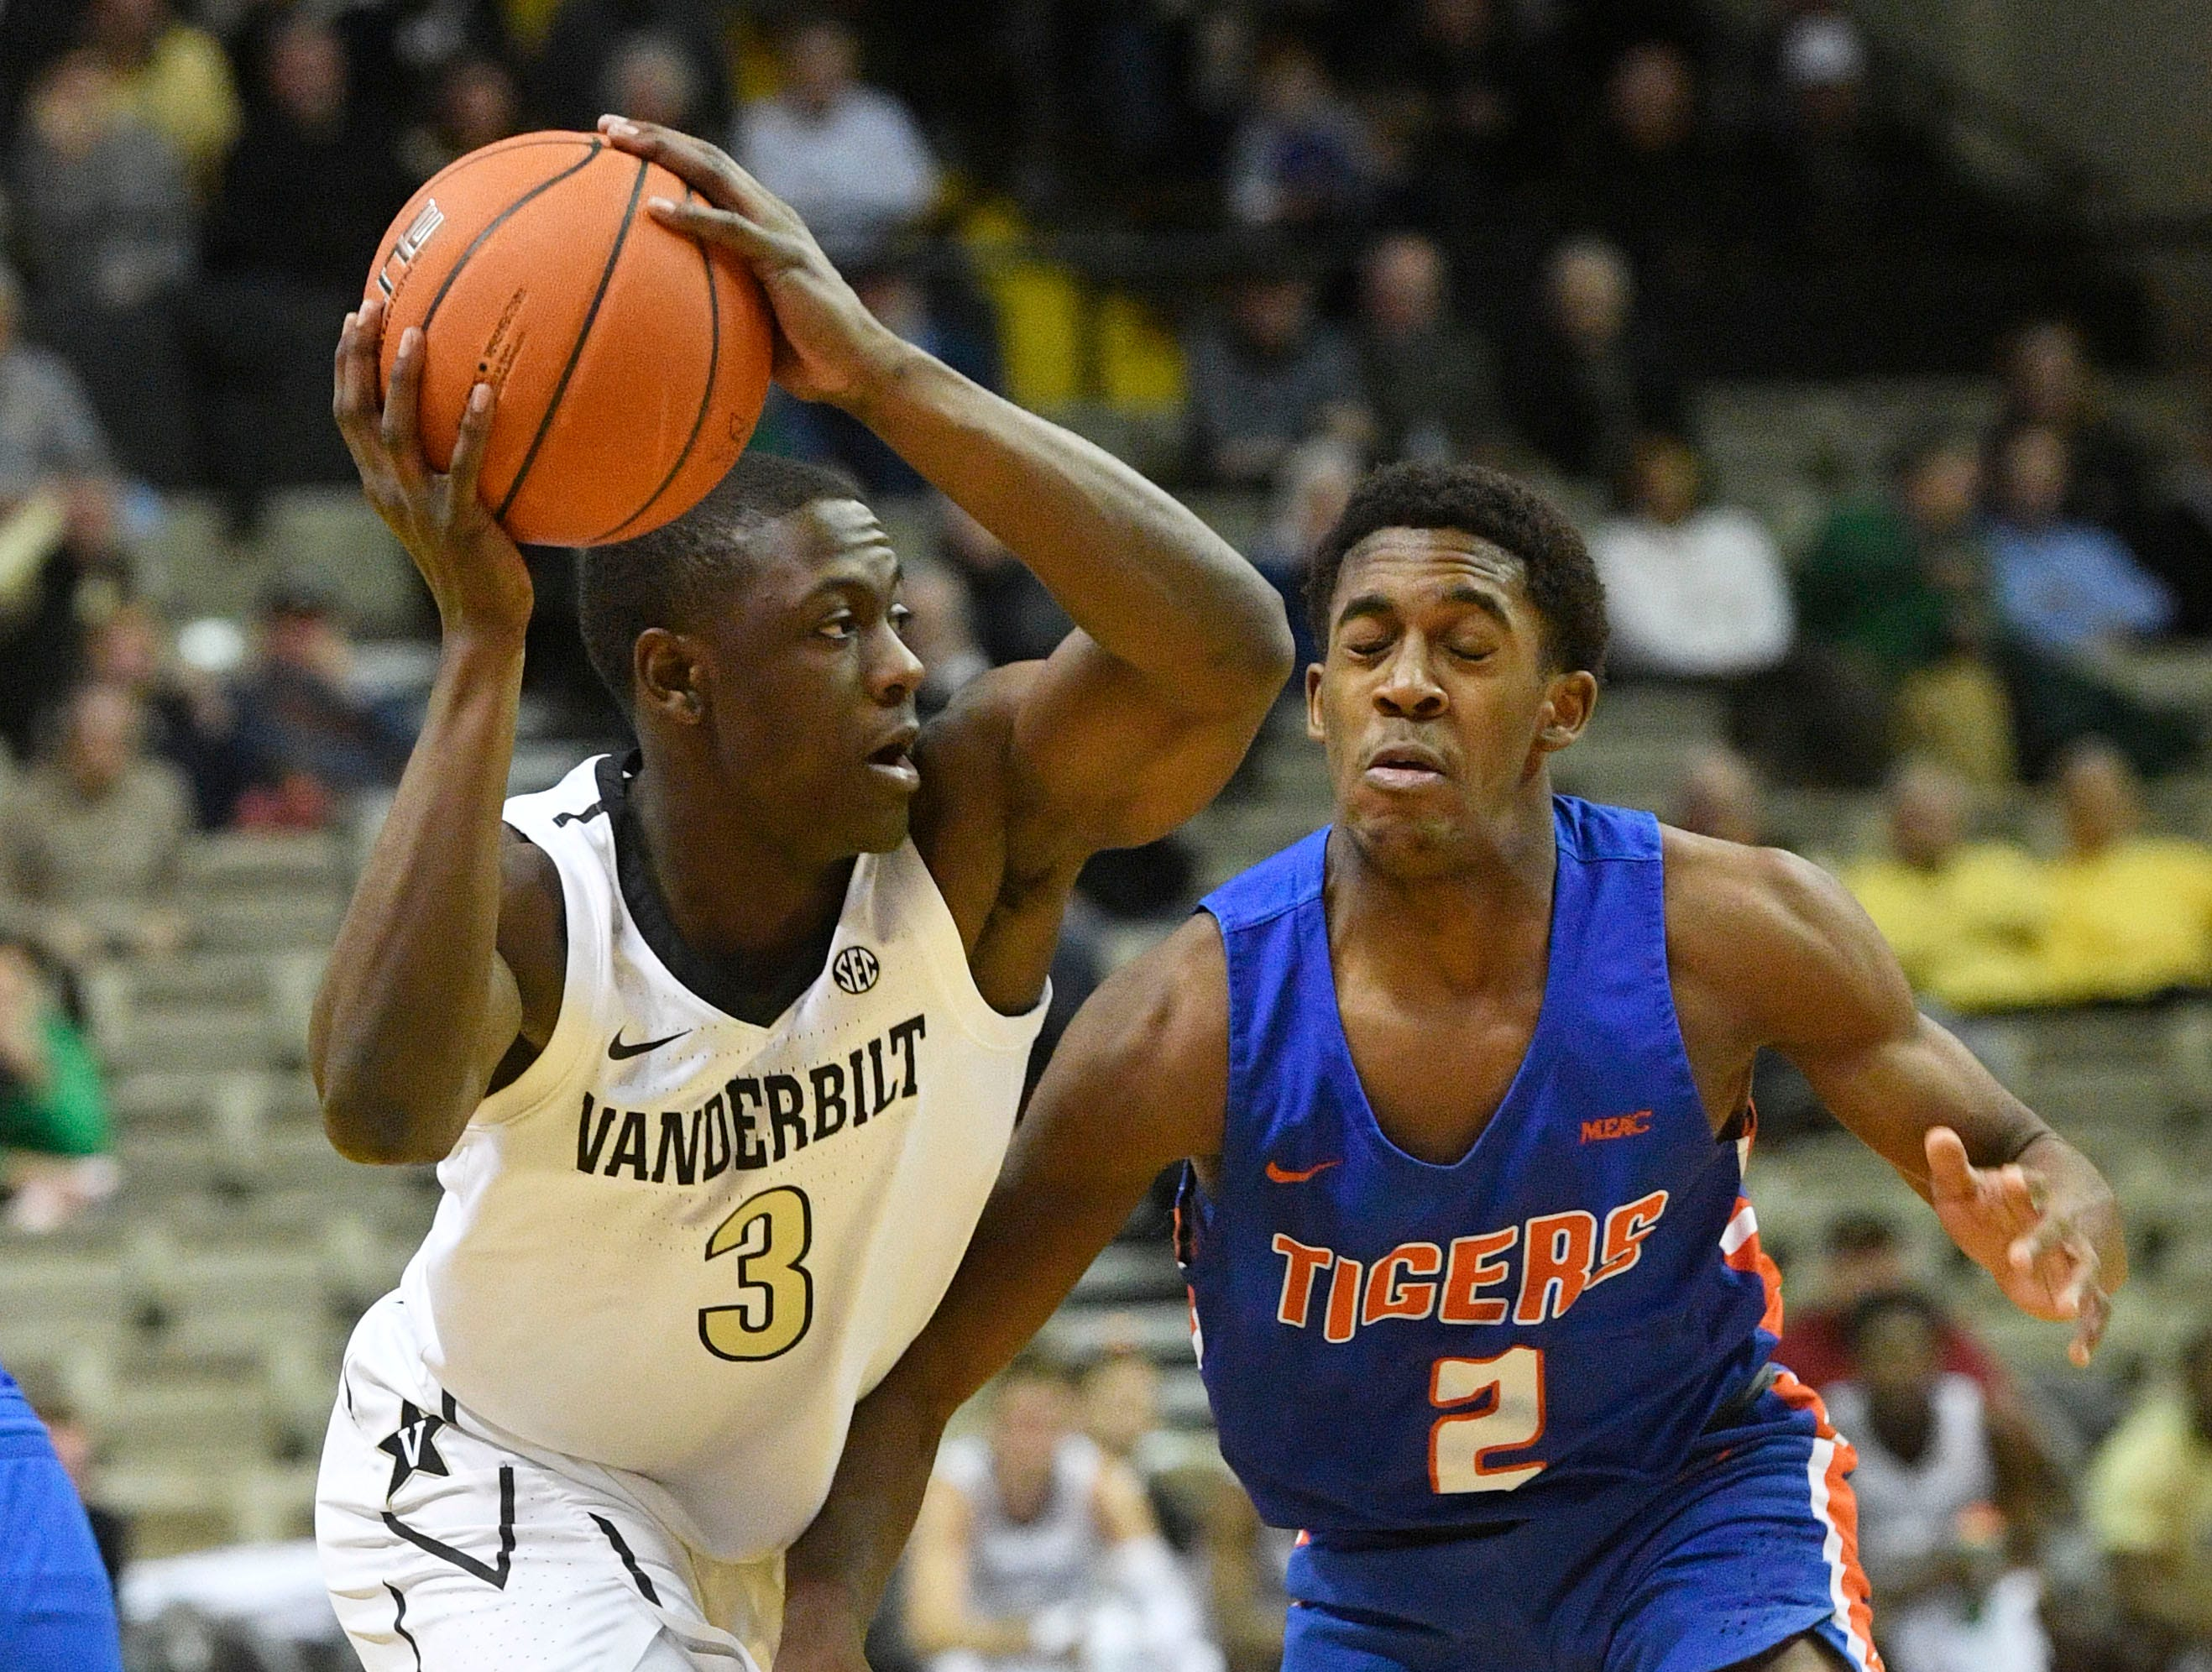 Vanderbilt Commodores guard Maxwell Evans (3) tries to pass as Vanderbilt plays Savannah State at Memorial Gym